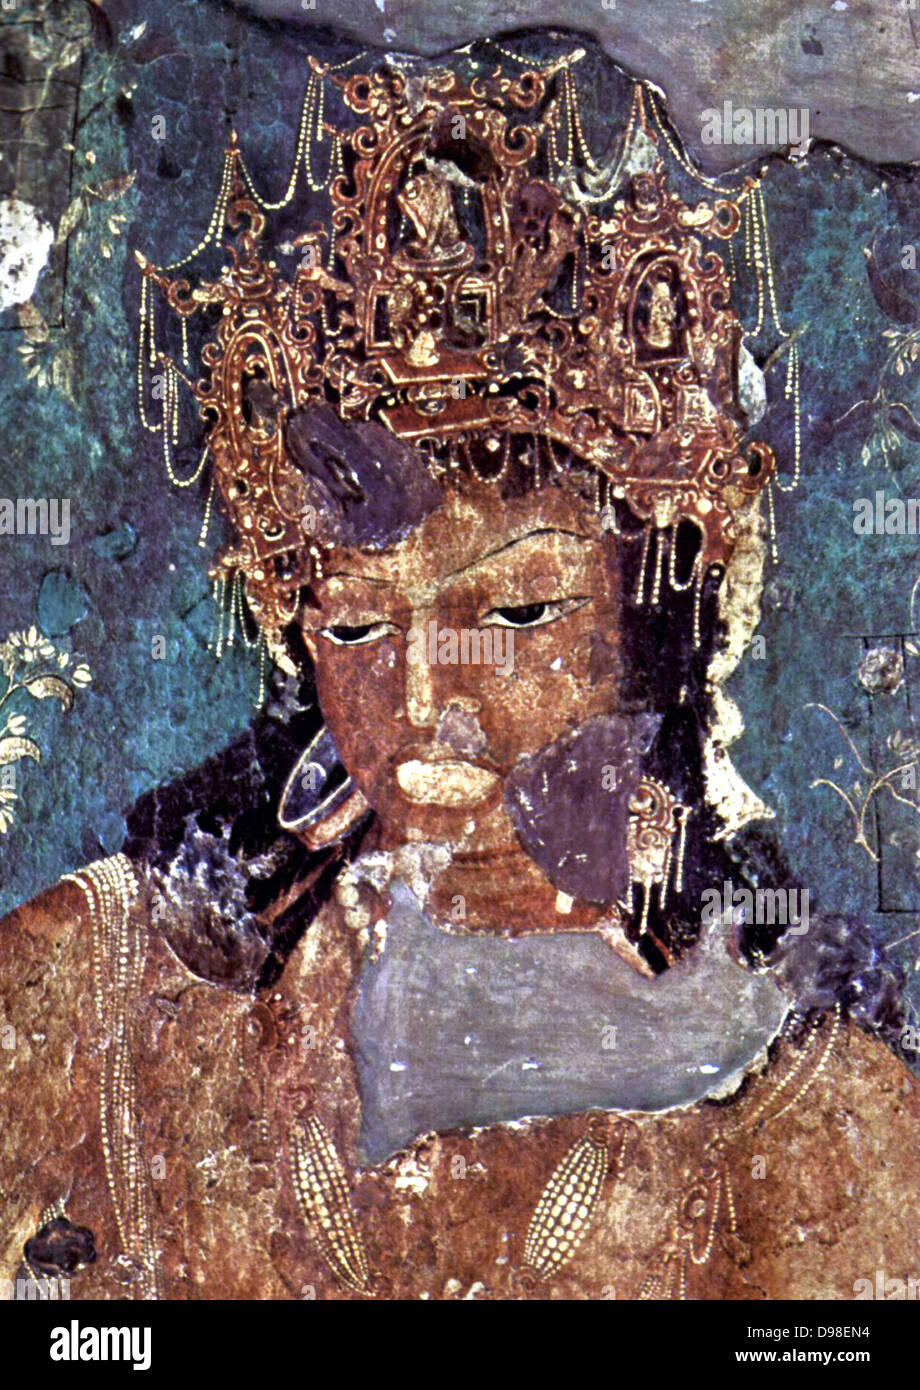 Ajanta Caves India. Cave painting dating from the second century BCE 2 - Stock Image